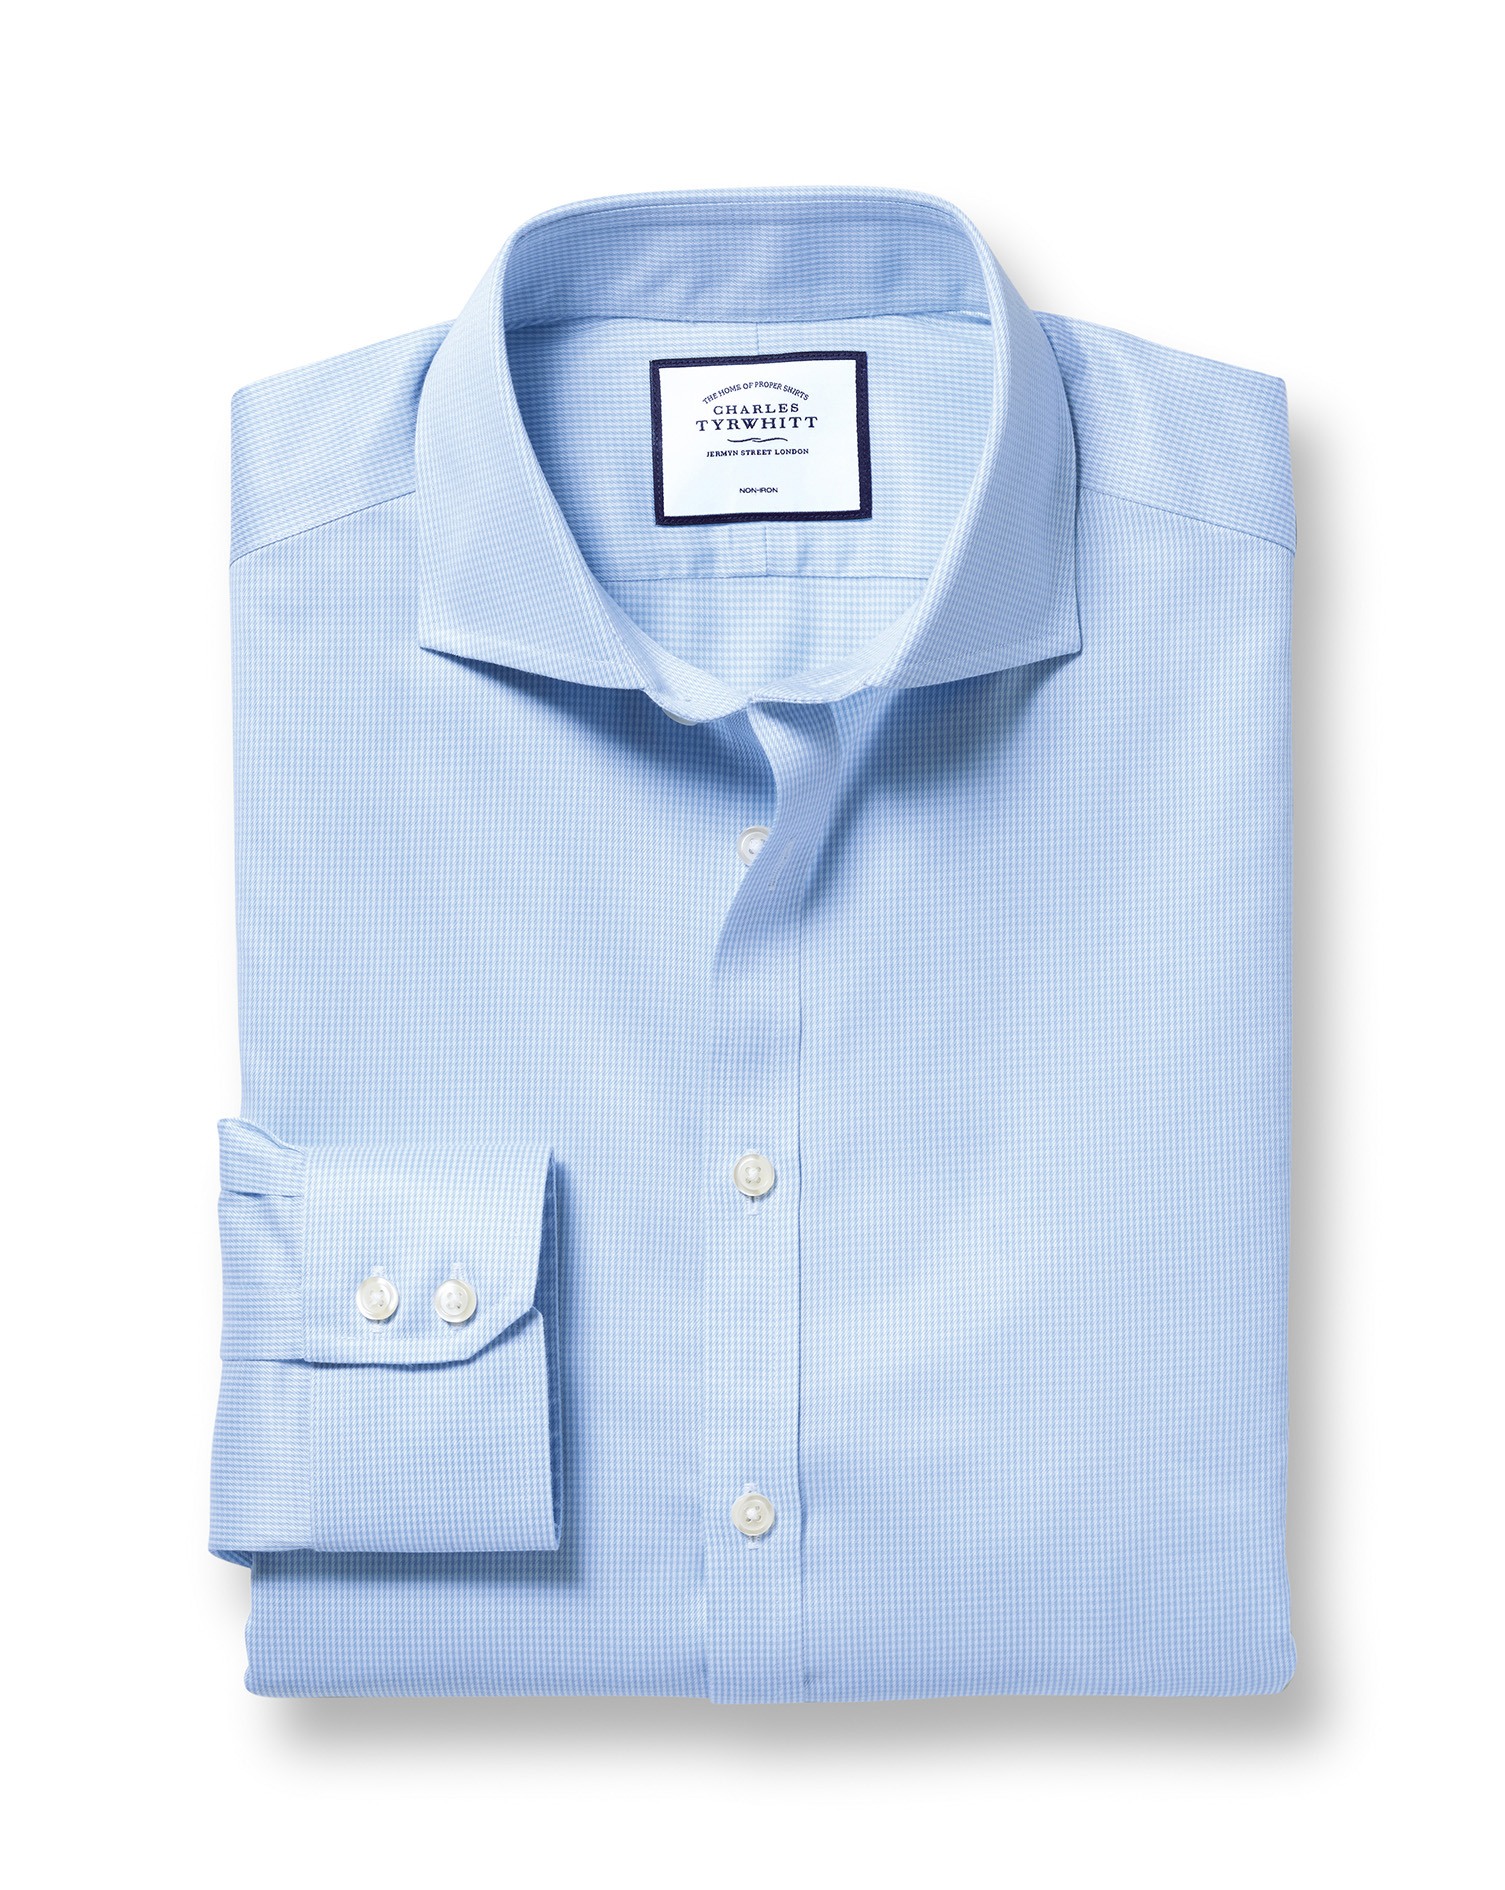 Extra Slim Fit Non-Iron Cutaway Sky Blue Puppytooth Cotton Formal Shirt Double Cuff Size 17.5/36 by